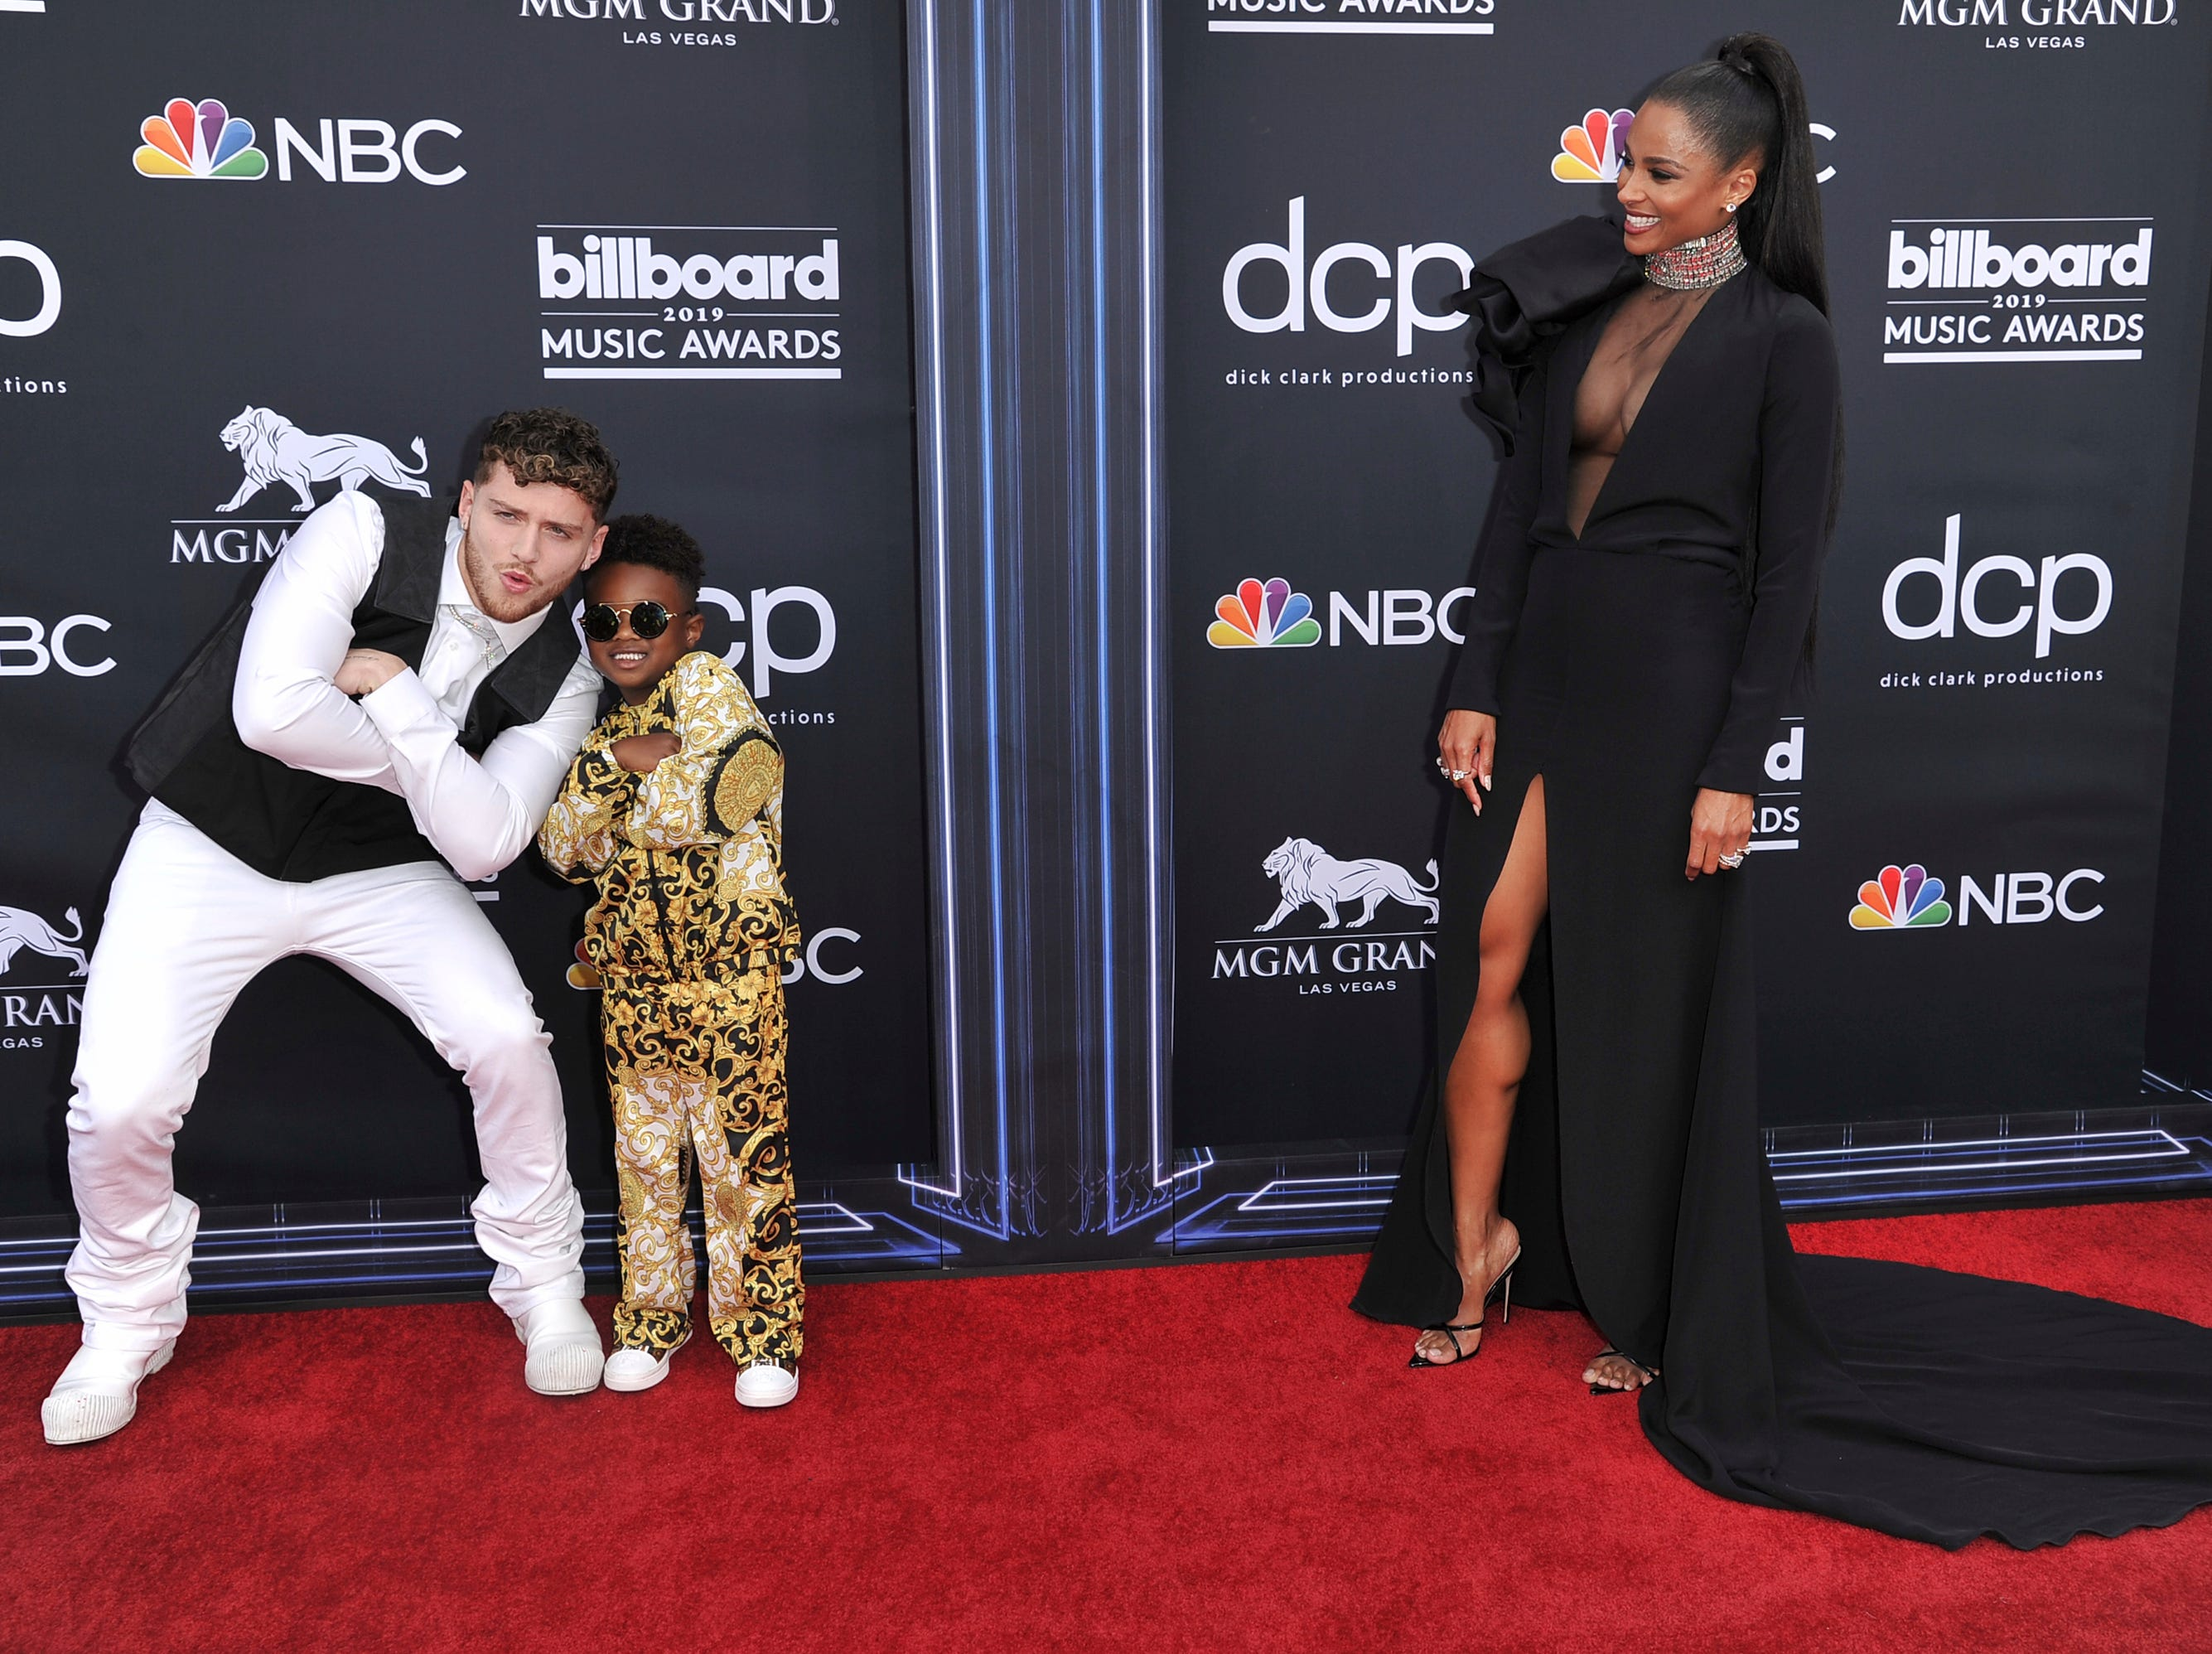 Ciara, right, looks on as Bazzi, from left, poses with her son Future as they arrive at the Billboard Music Awards on Wednesday, May 1, 2019, at the MGM Grand Garden Arena in Las Vegas.